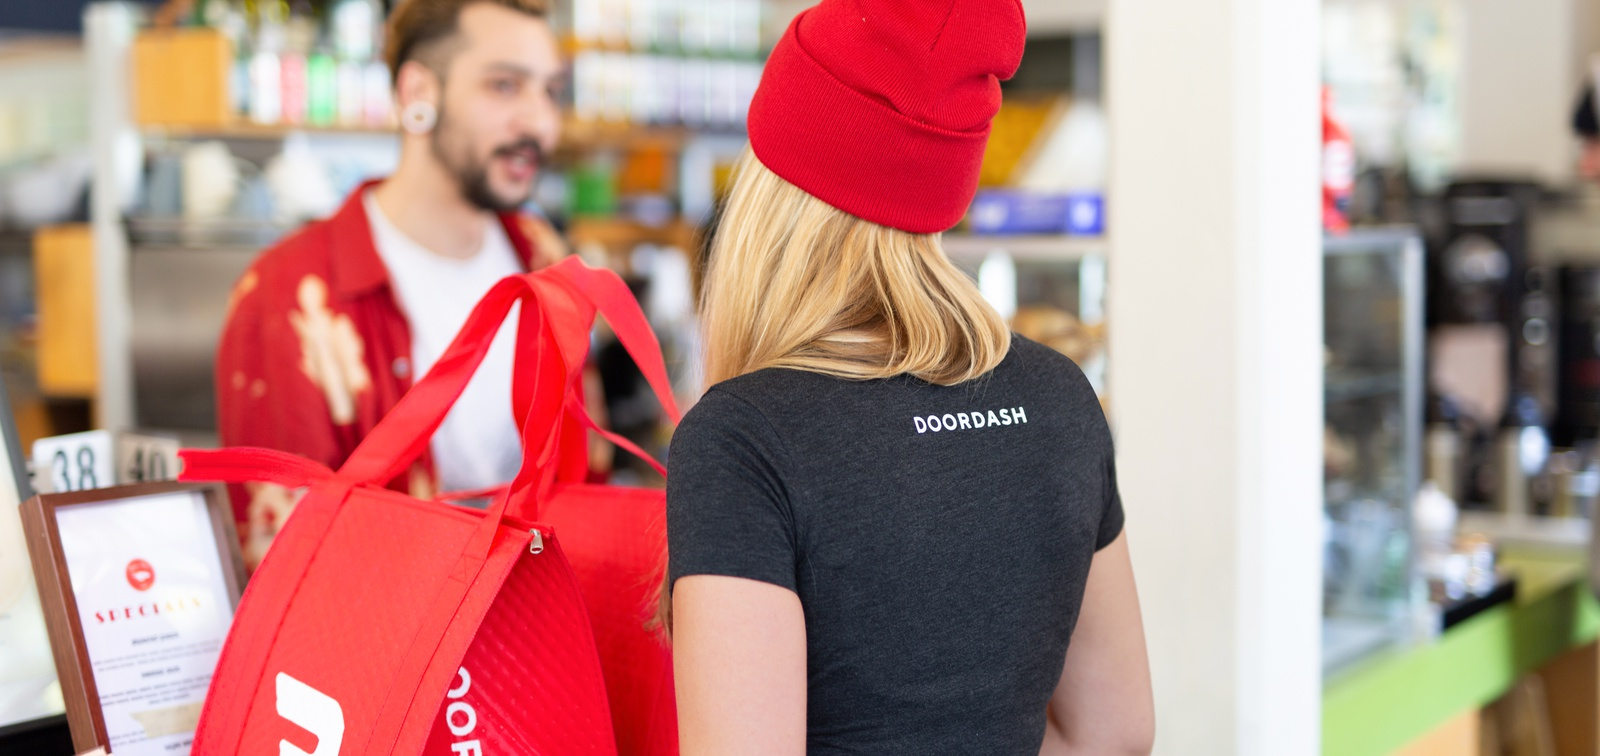 DoorDash named fastest growing company in US